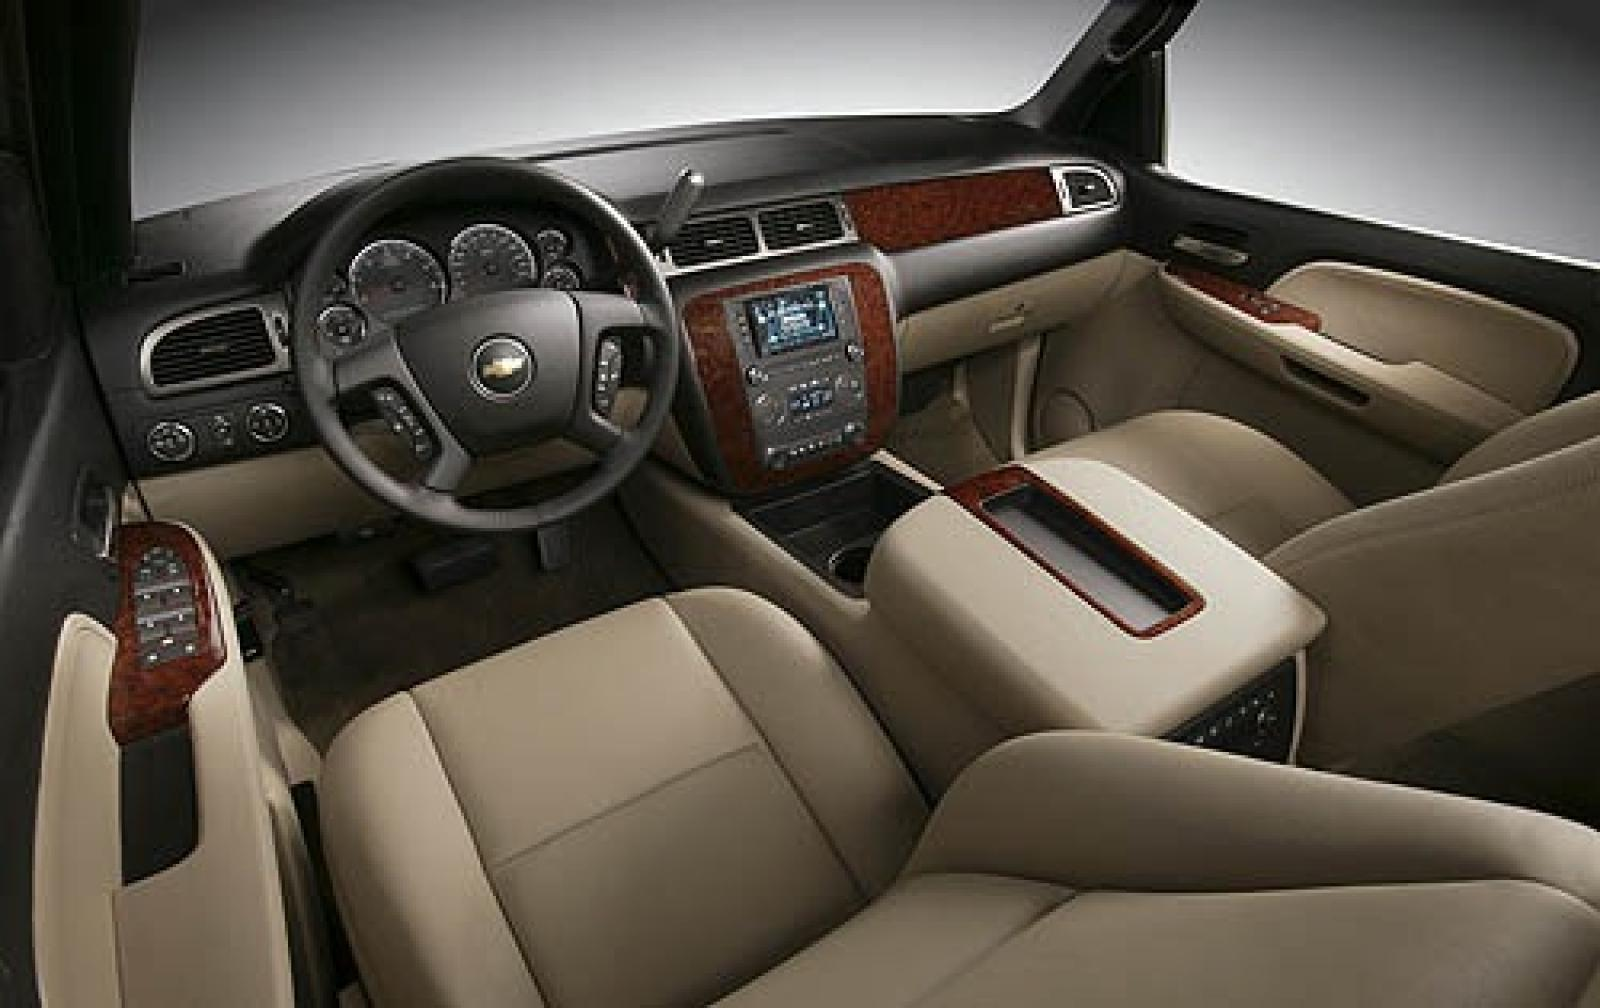 chevrolet suburban l interior 7 800 1024 1280 1600 origin